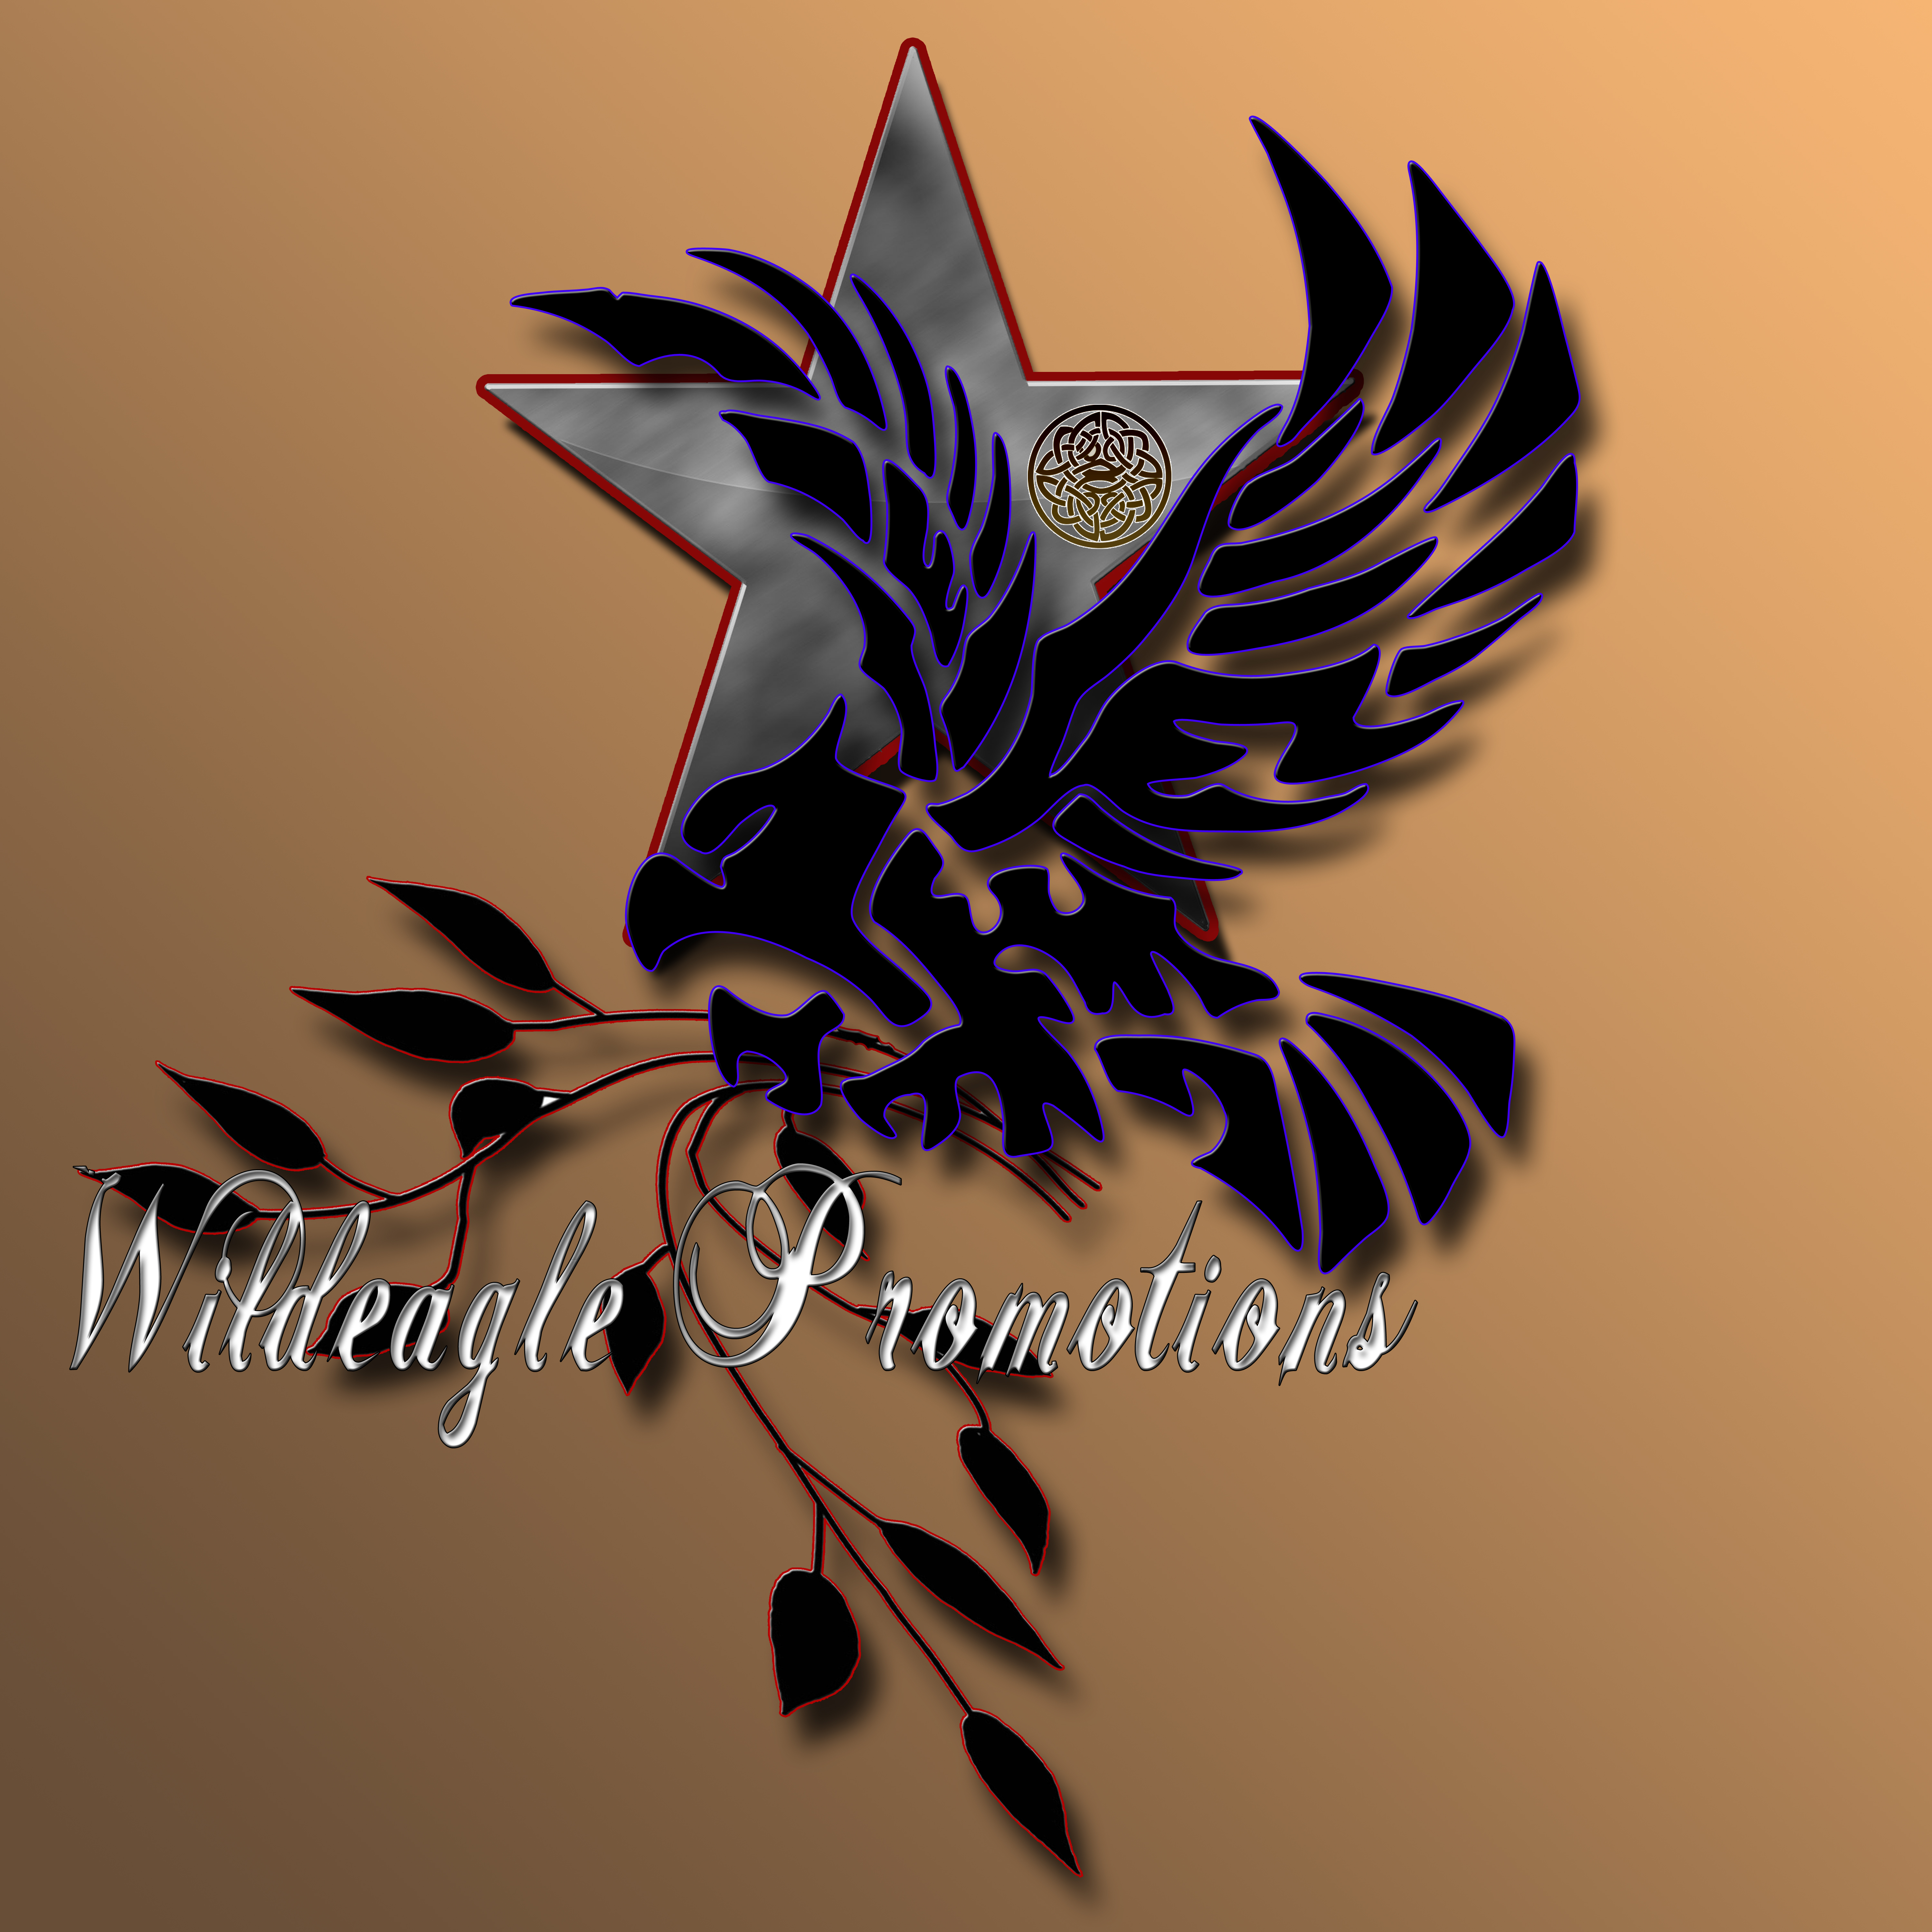 wildeagle promotions concept logo